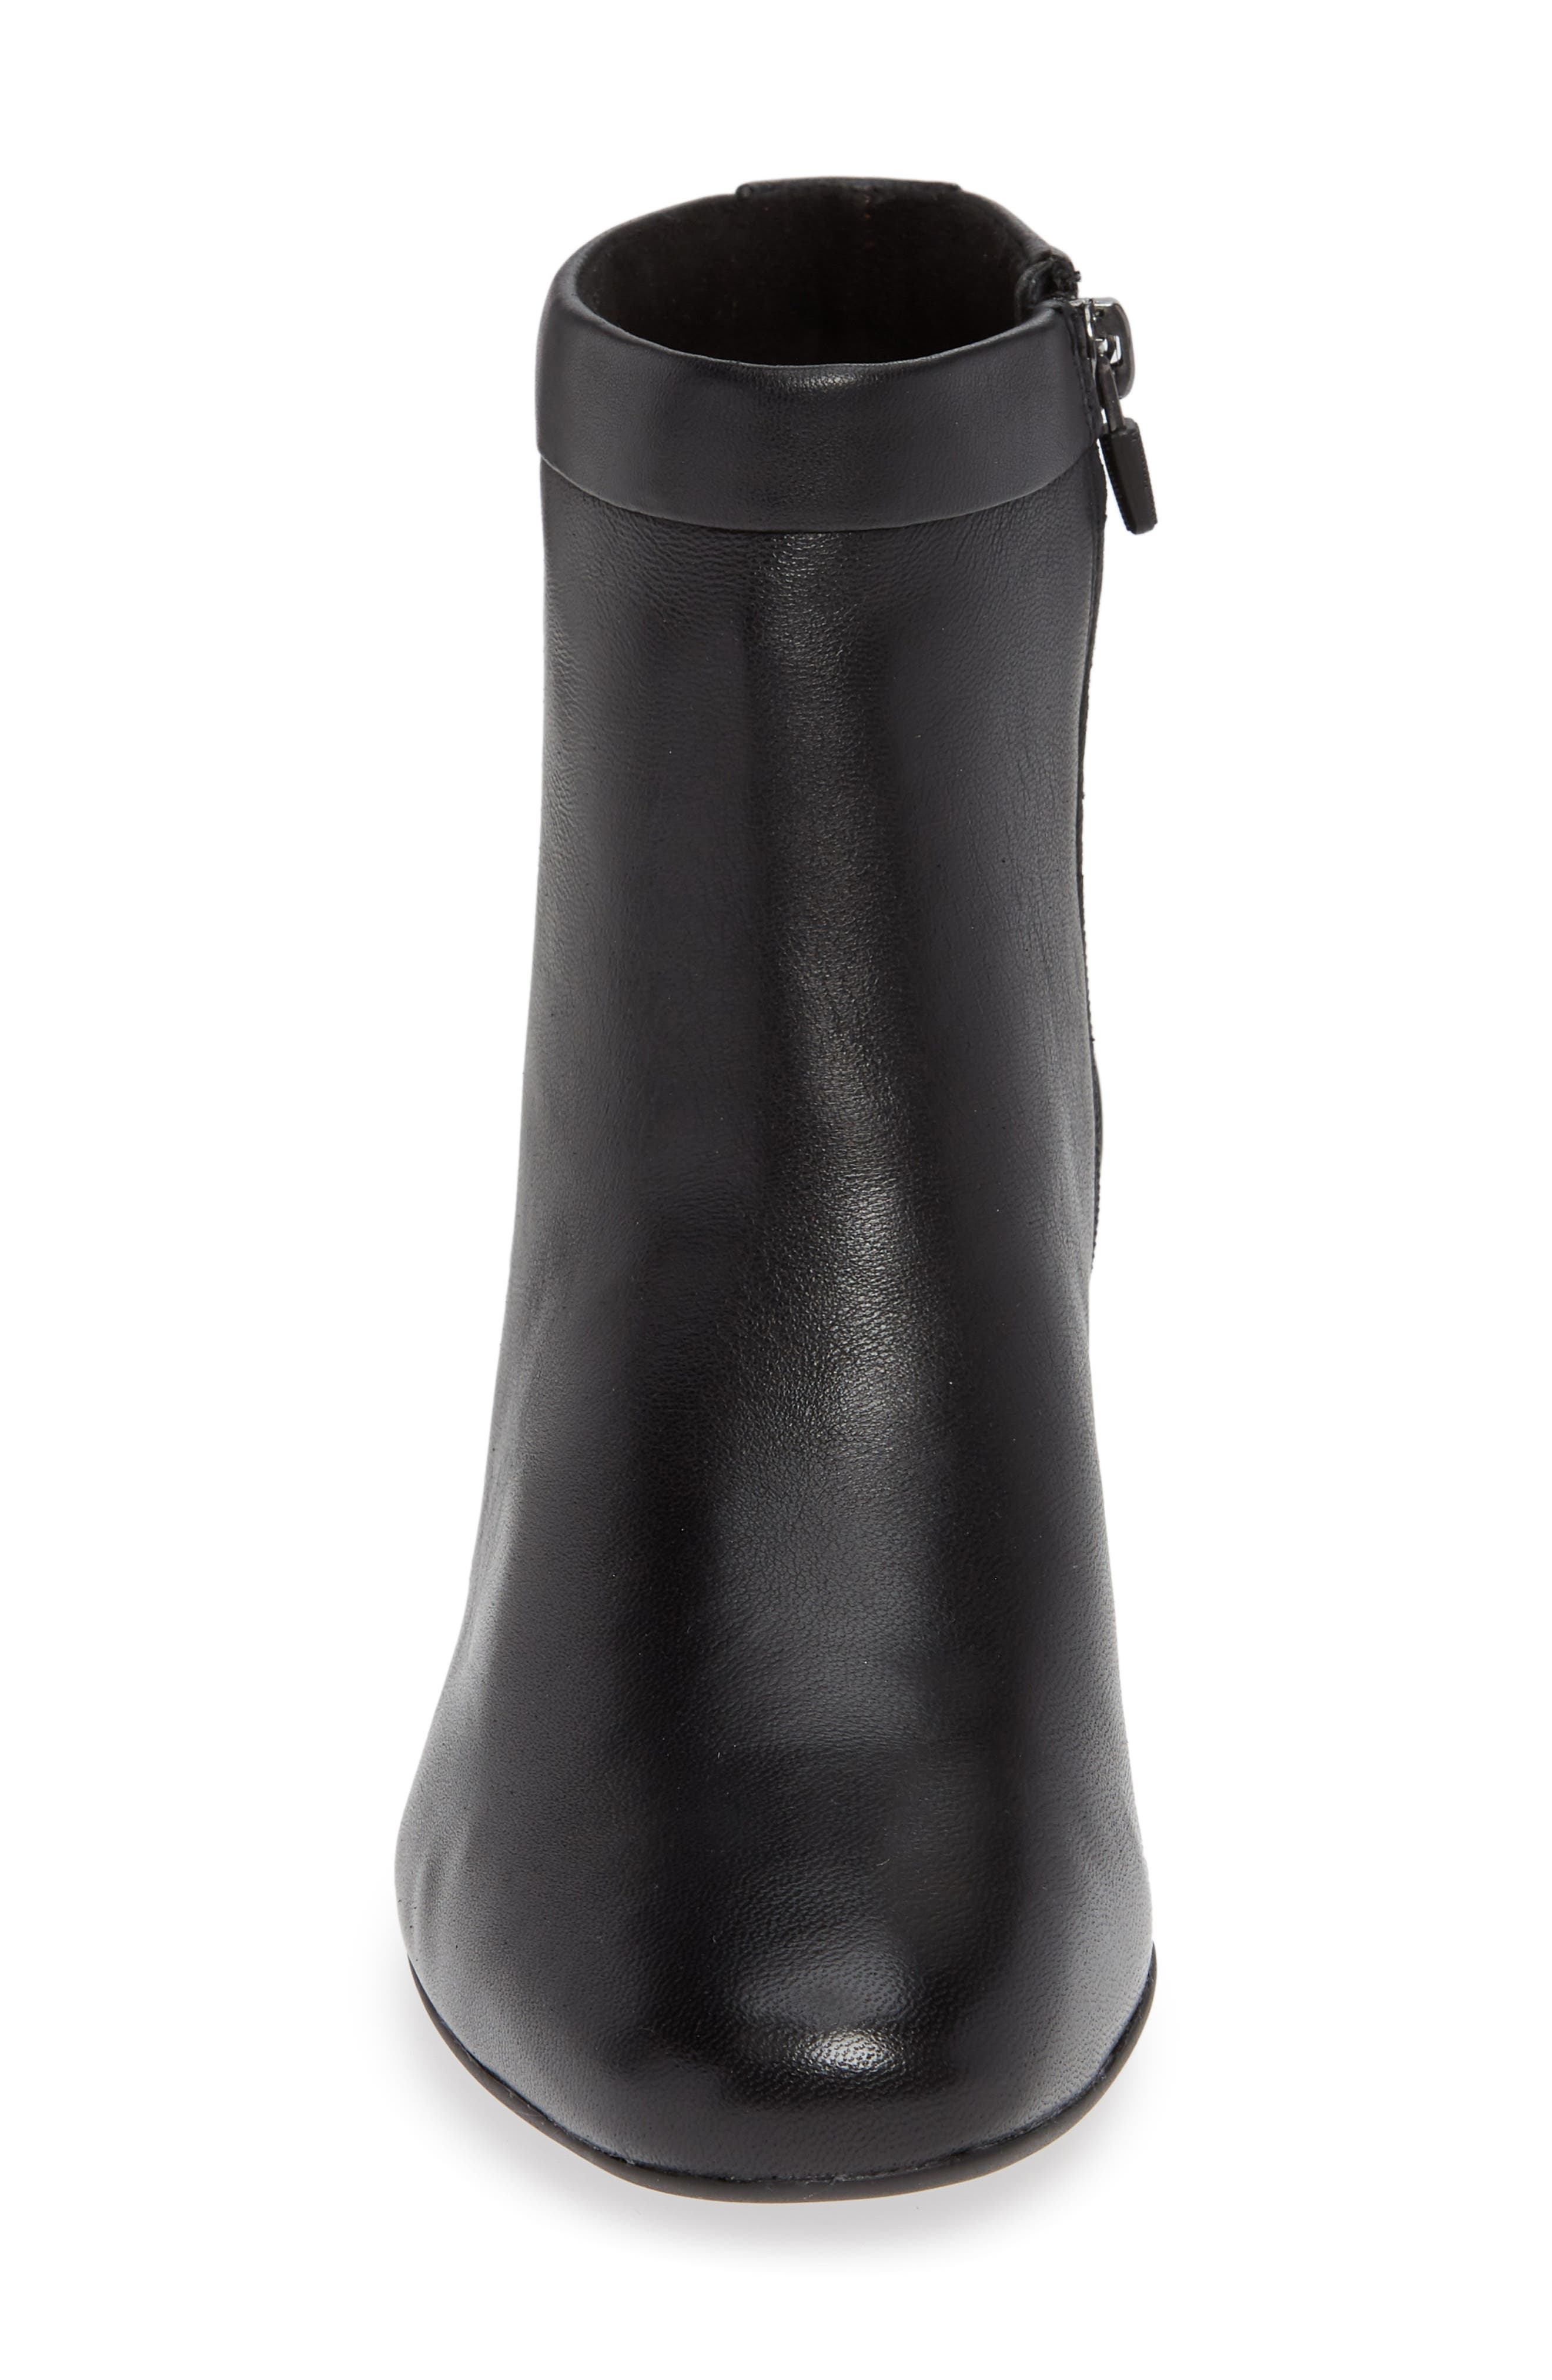 CLARKS<SUP>®</SUP>, Un Cosmo Up Bootie, Alternate thumbnail 4, color, BLACK LEATHER